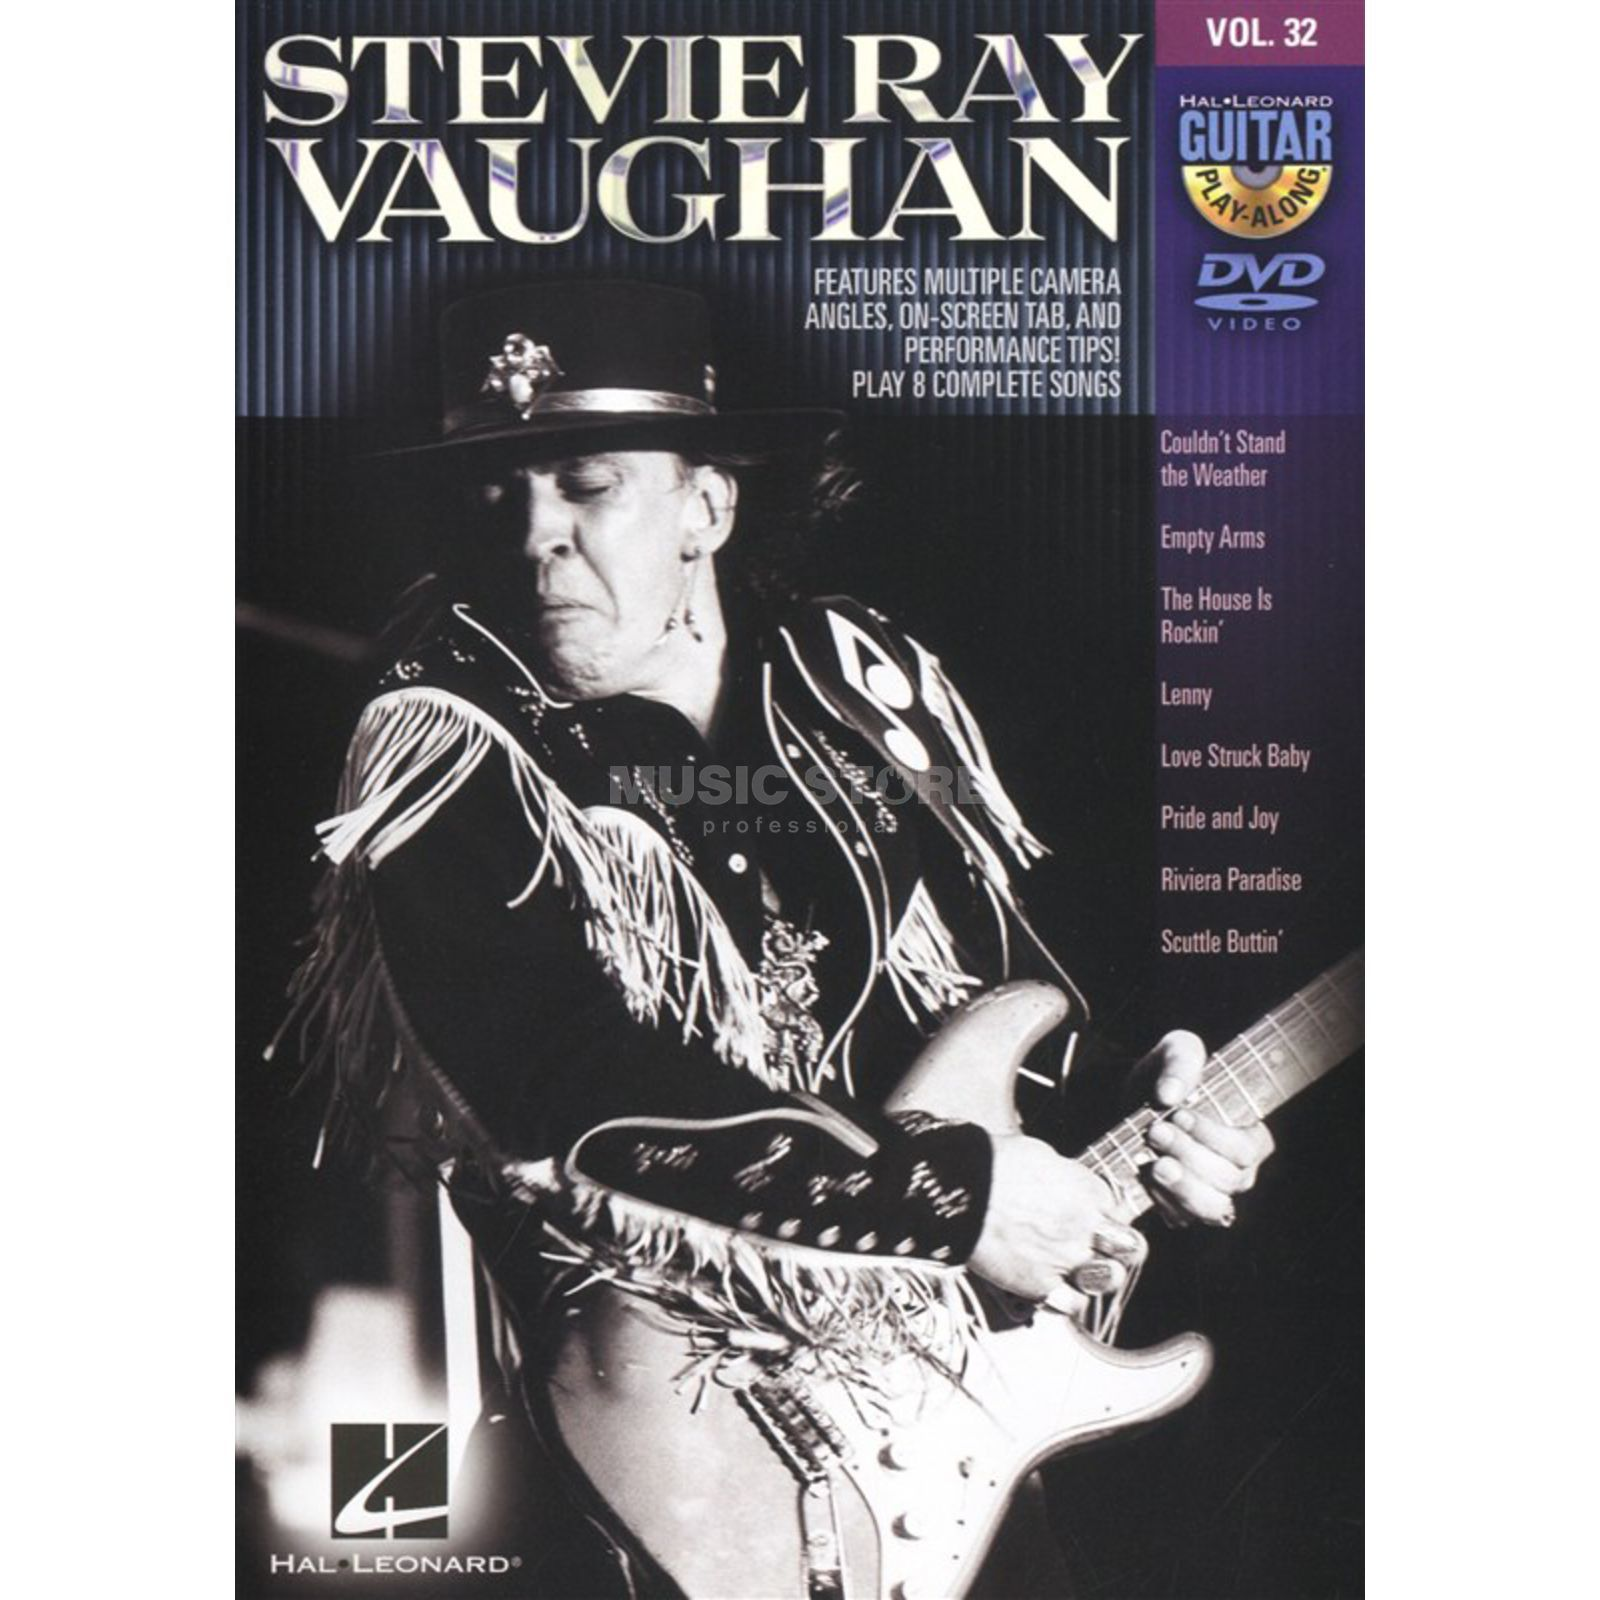 Hal Leonard Guitar Play-Along: Stevie Ray Vaughan Vol. 32, DVD Produktbild